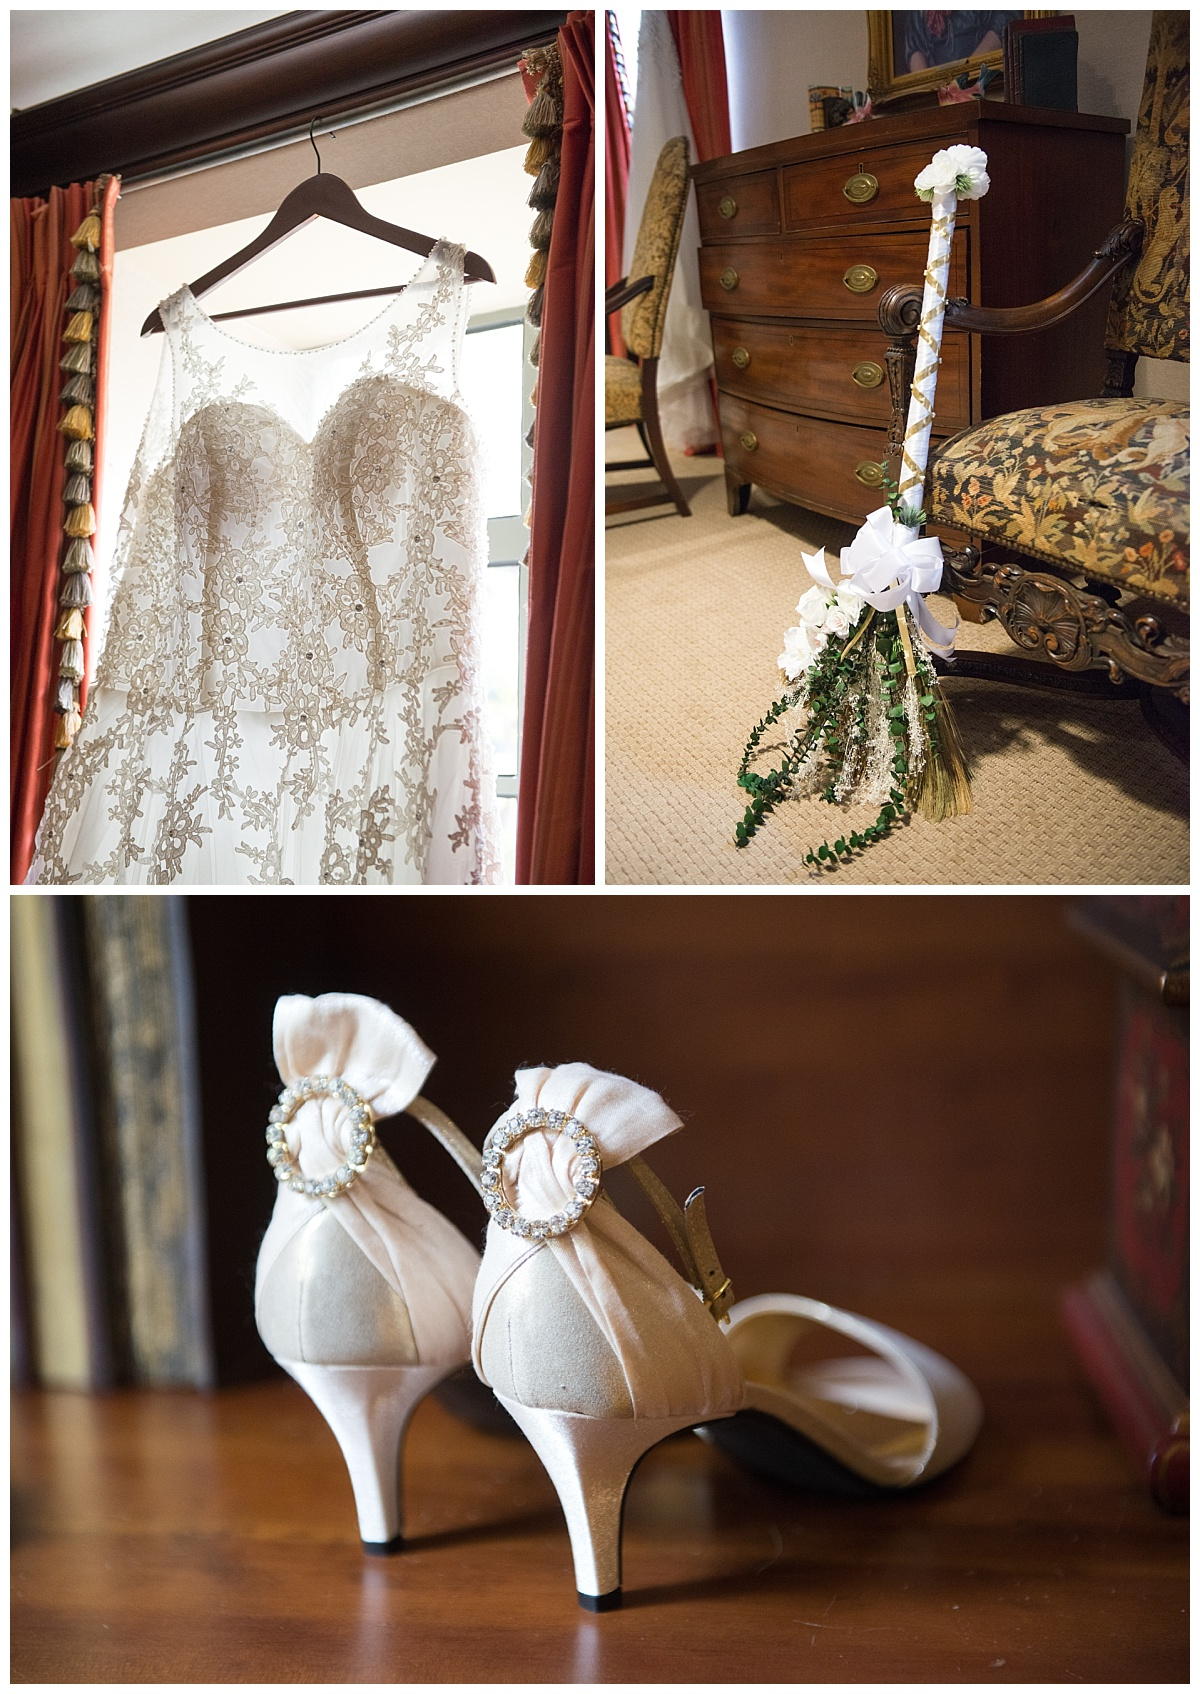 Bridal details and broom